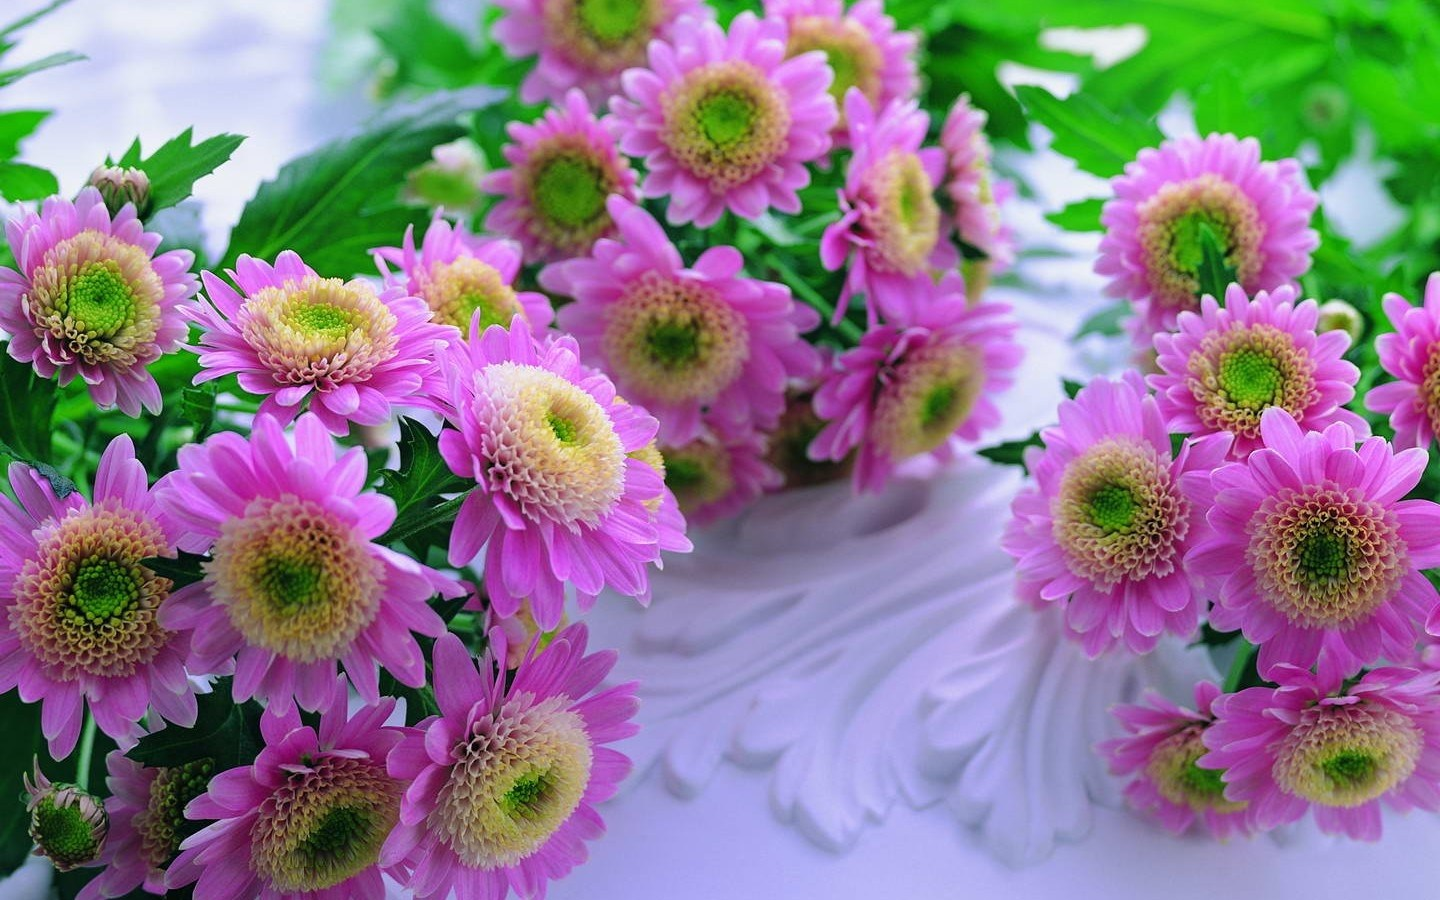 HD Wallpaper Flowers Download